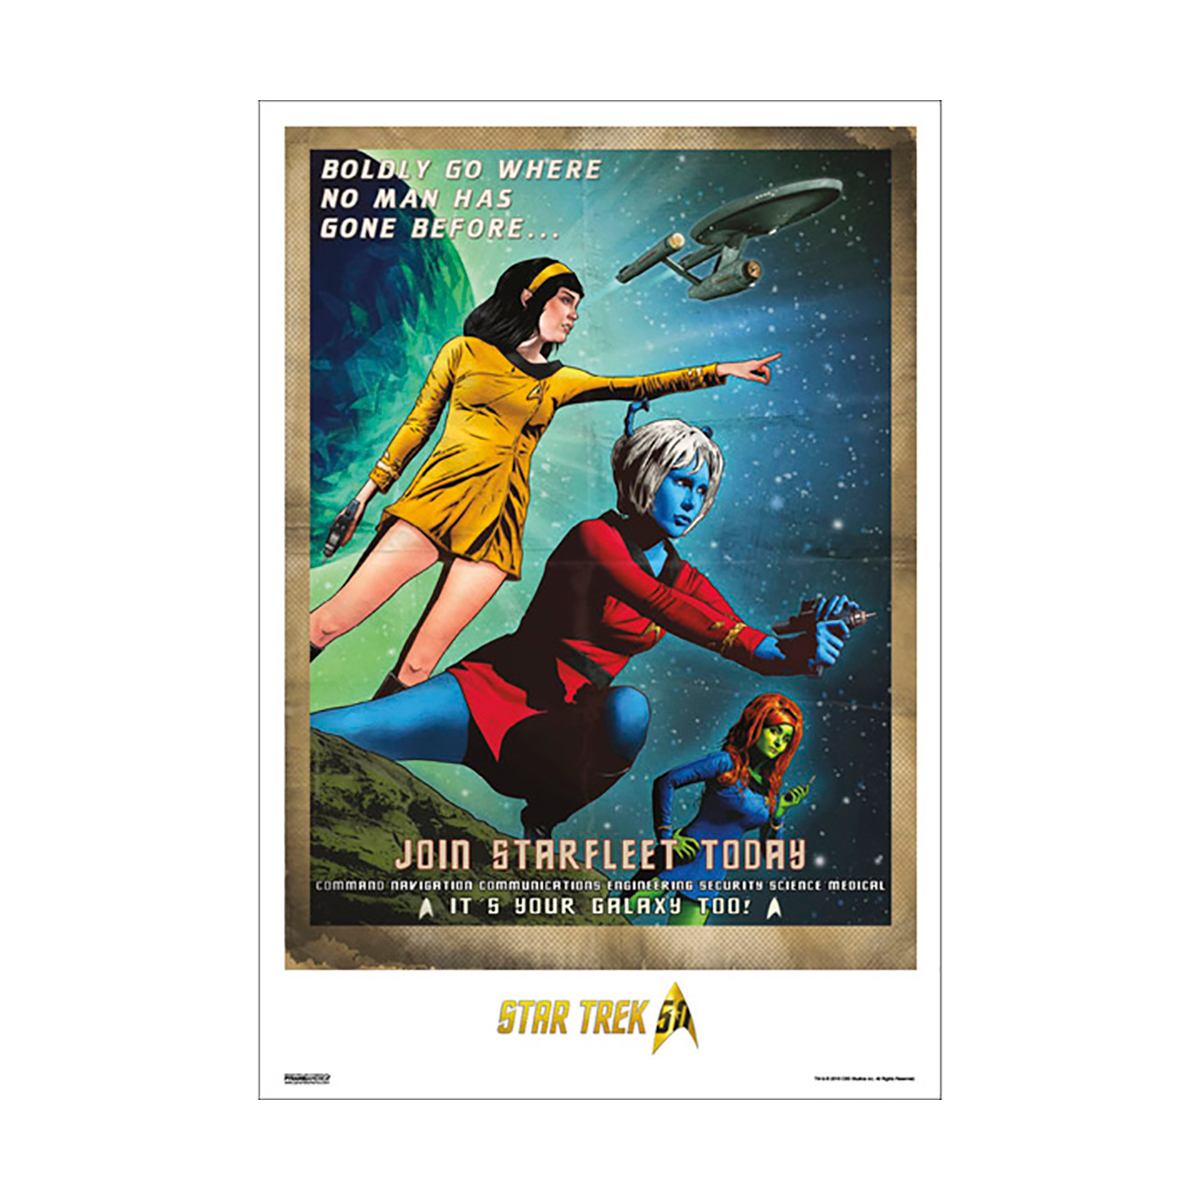 Star Trek 50th Art Collection It's Your Galaxy Too! by Joe Corroney Poster [13 x 9]